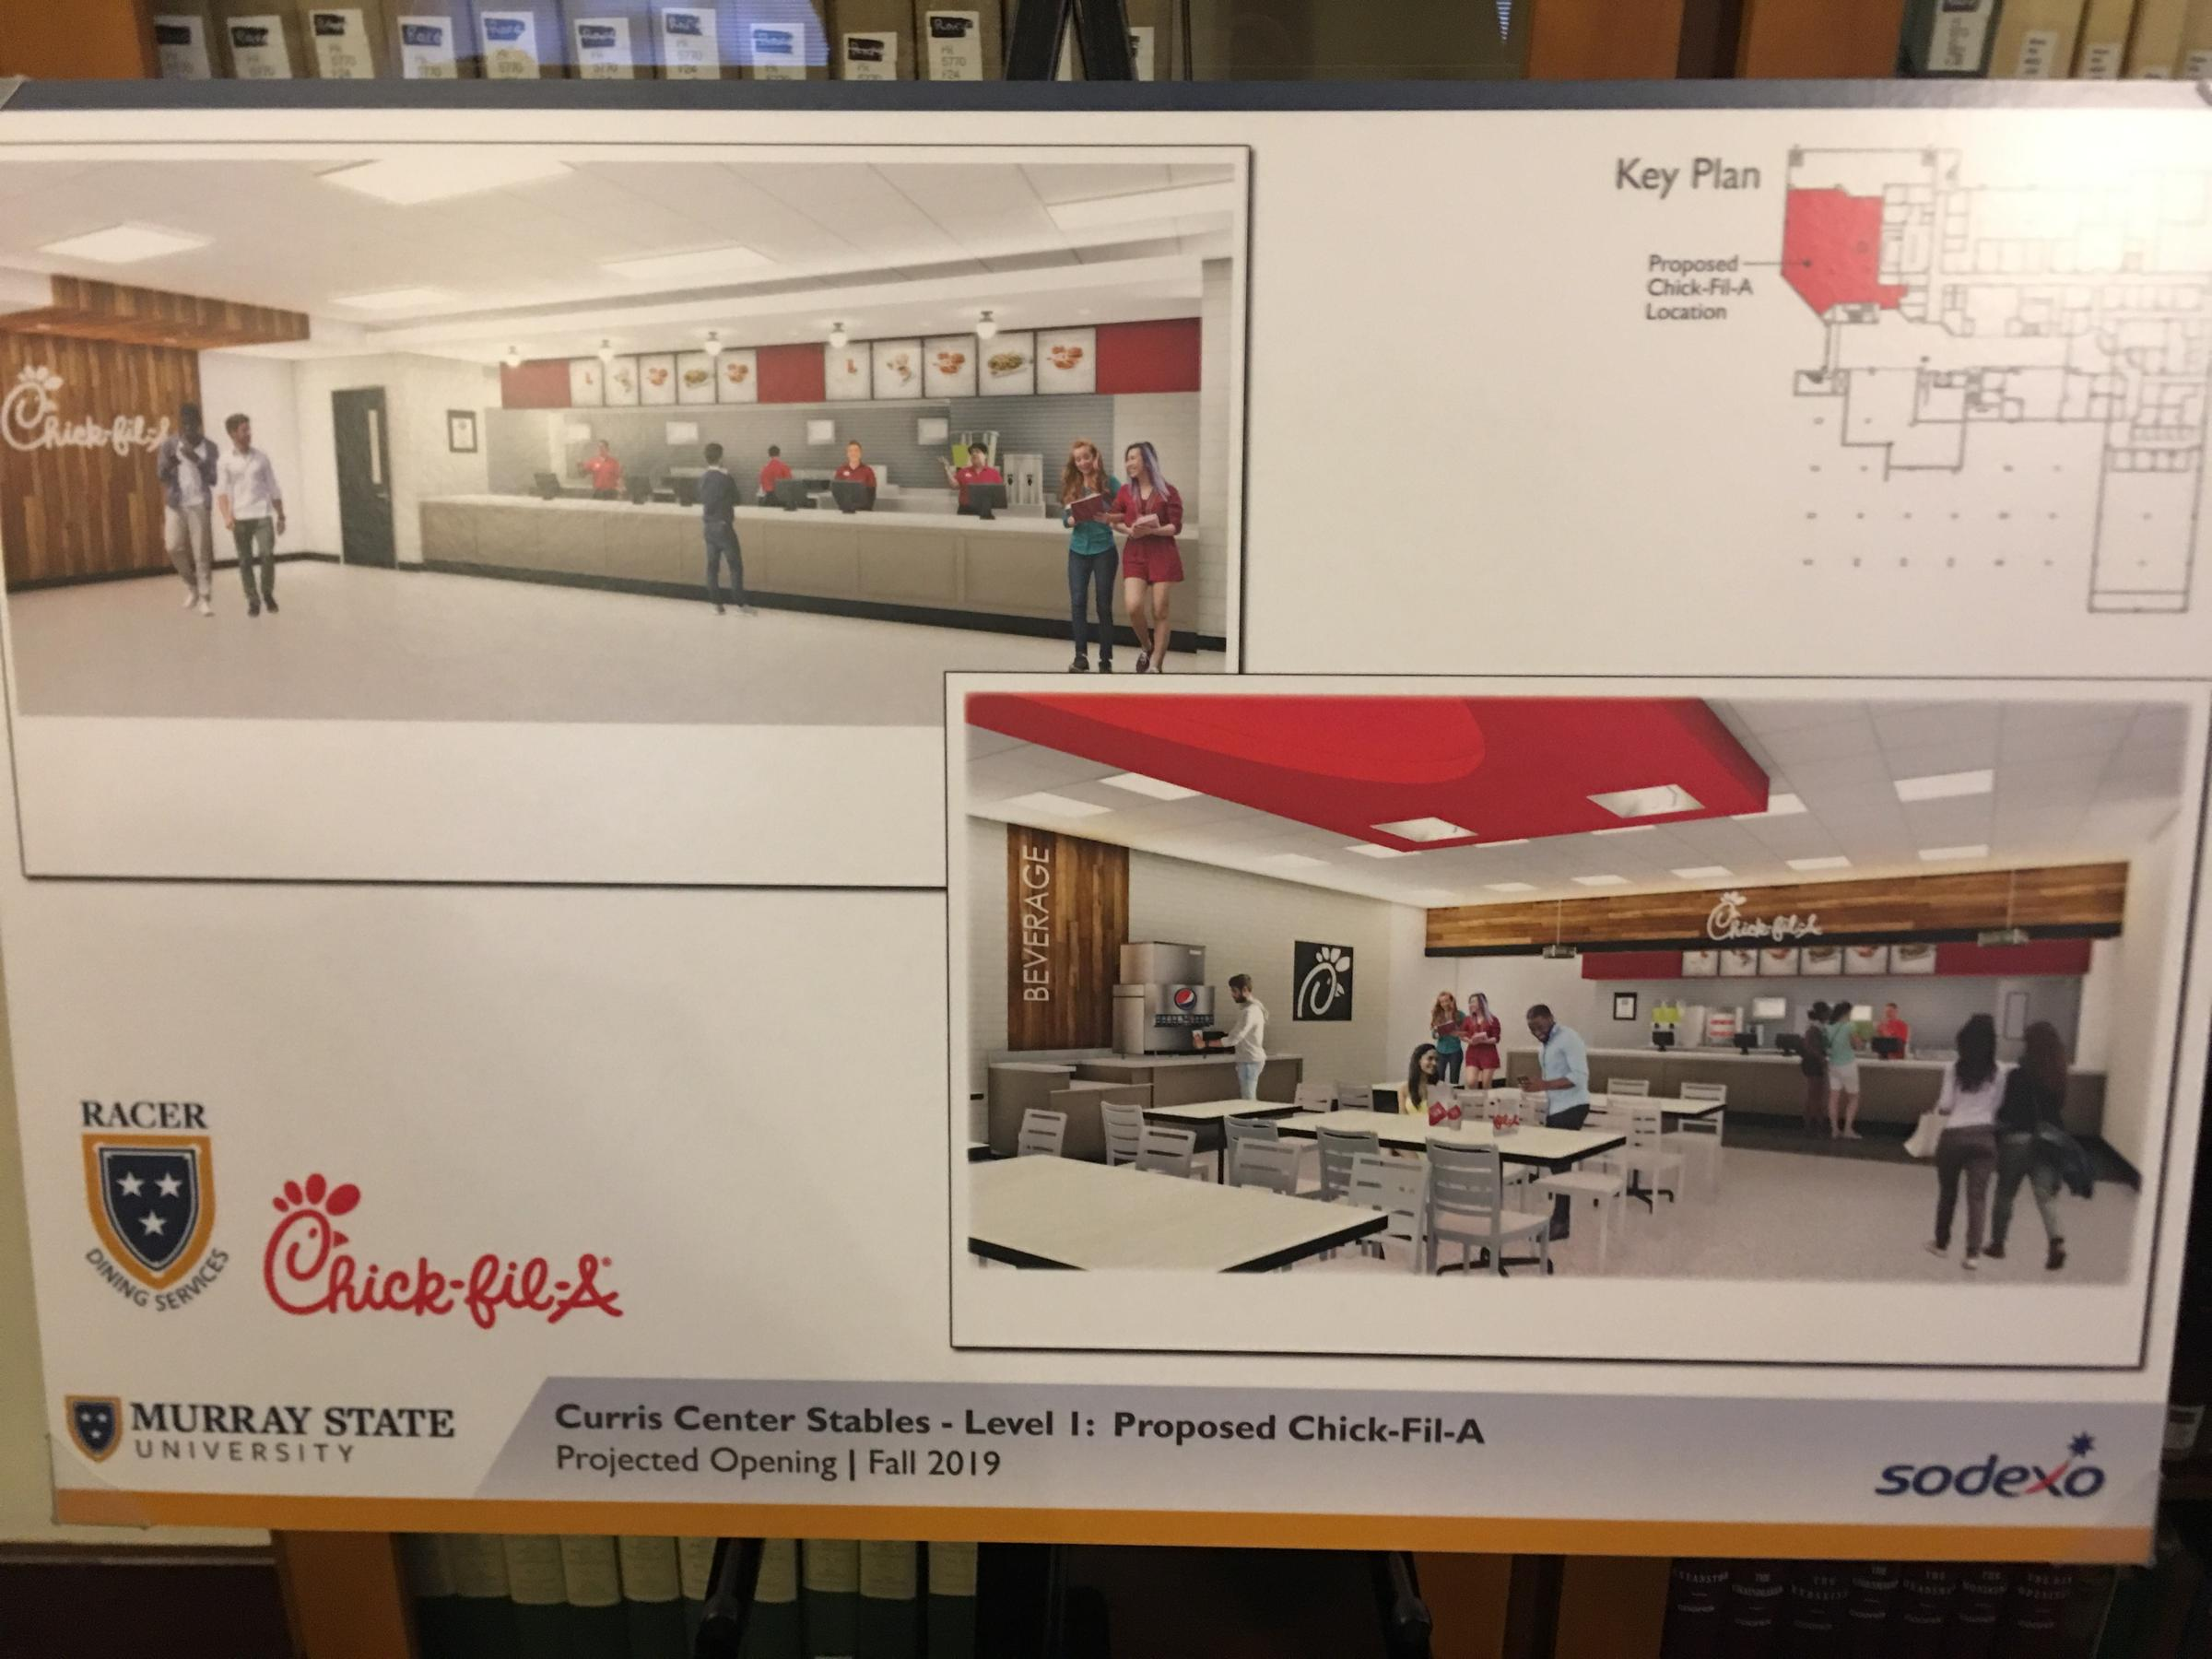 Sodexo Outlines Designs, Timeline For New Dining Options